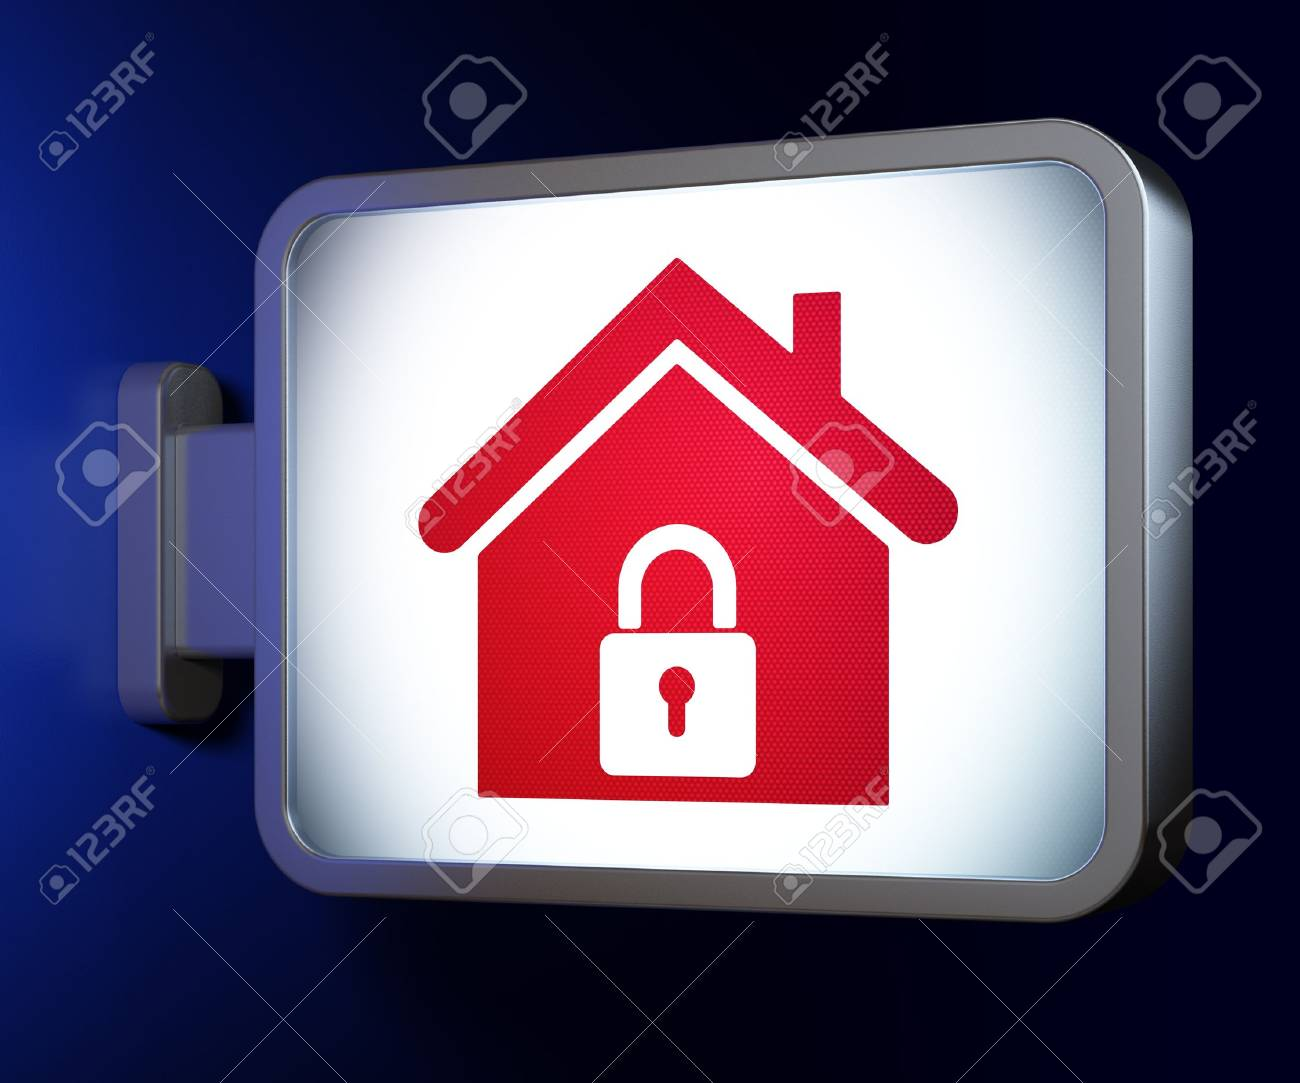 Protection concept  Home on advertising billboard background, 3d render Stock Photo - 19115073